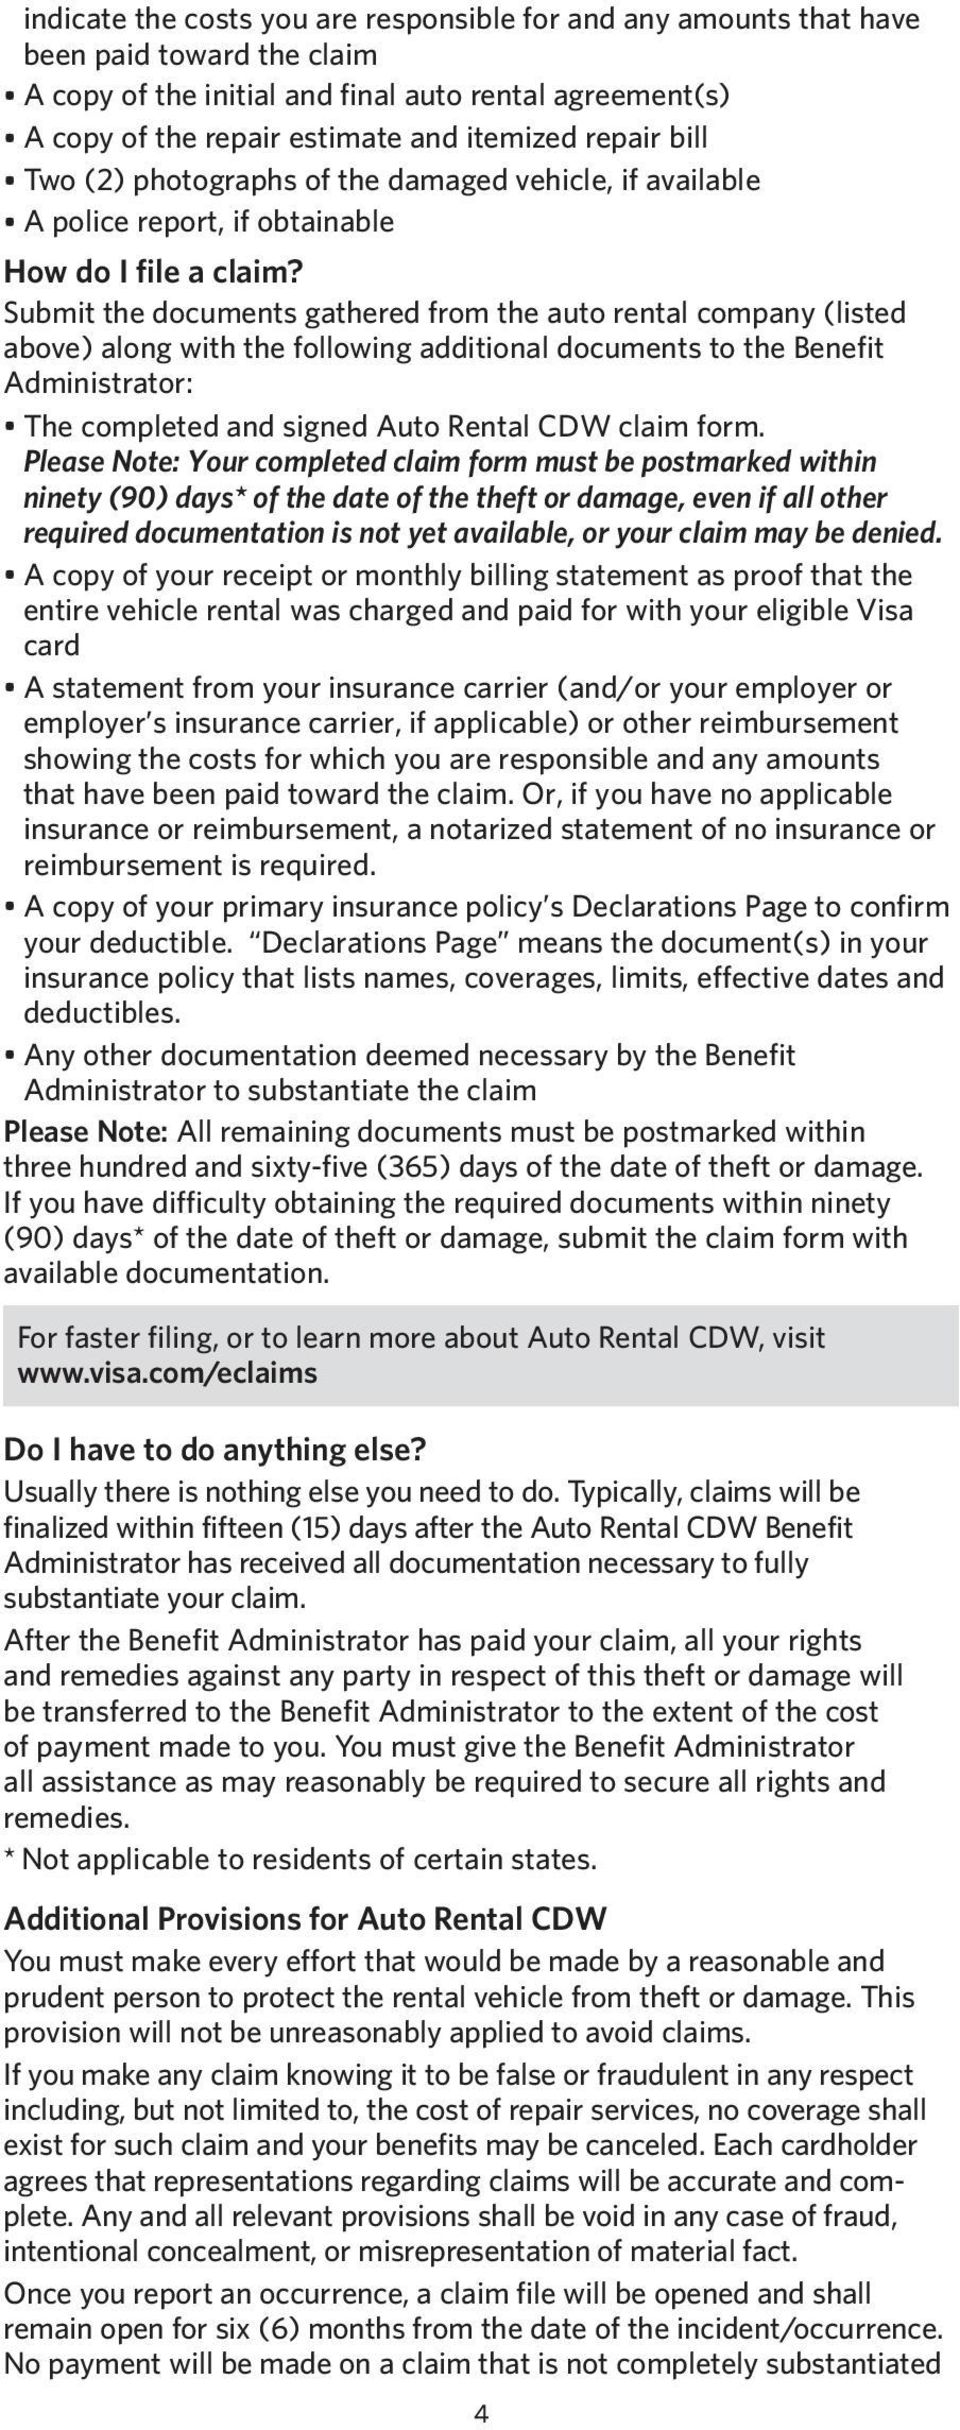 Submit the documents gathered from the auto rental company (listed above) along with the following additional documents to the Benefit Administrator: The completed and signed Auto Rental CDW claim